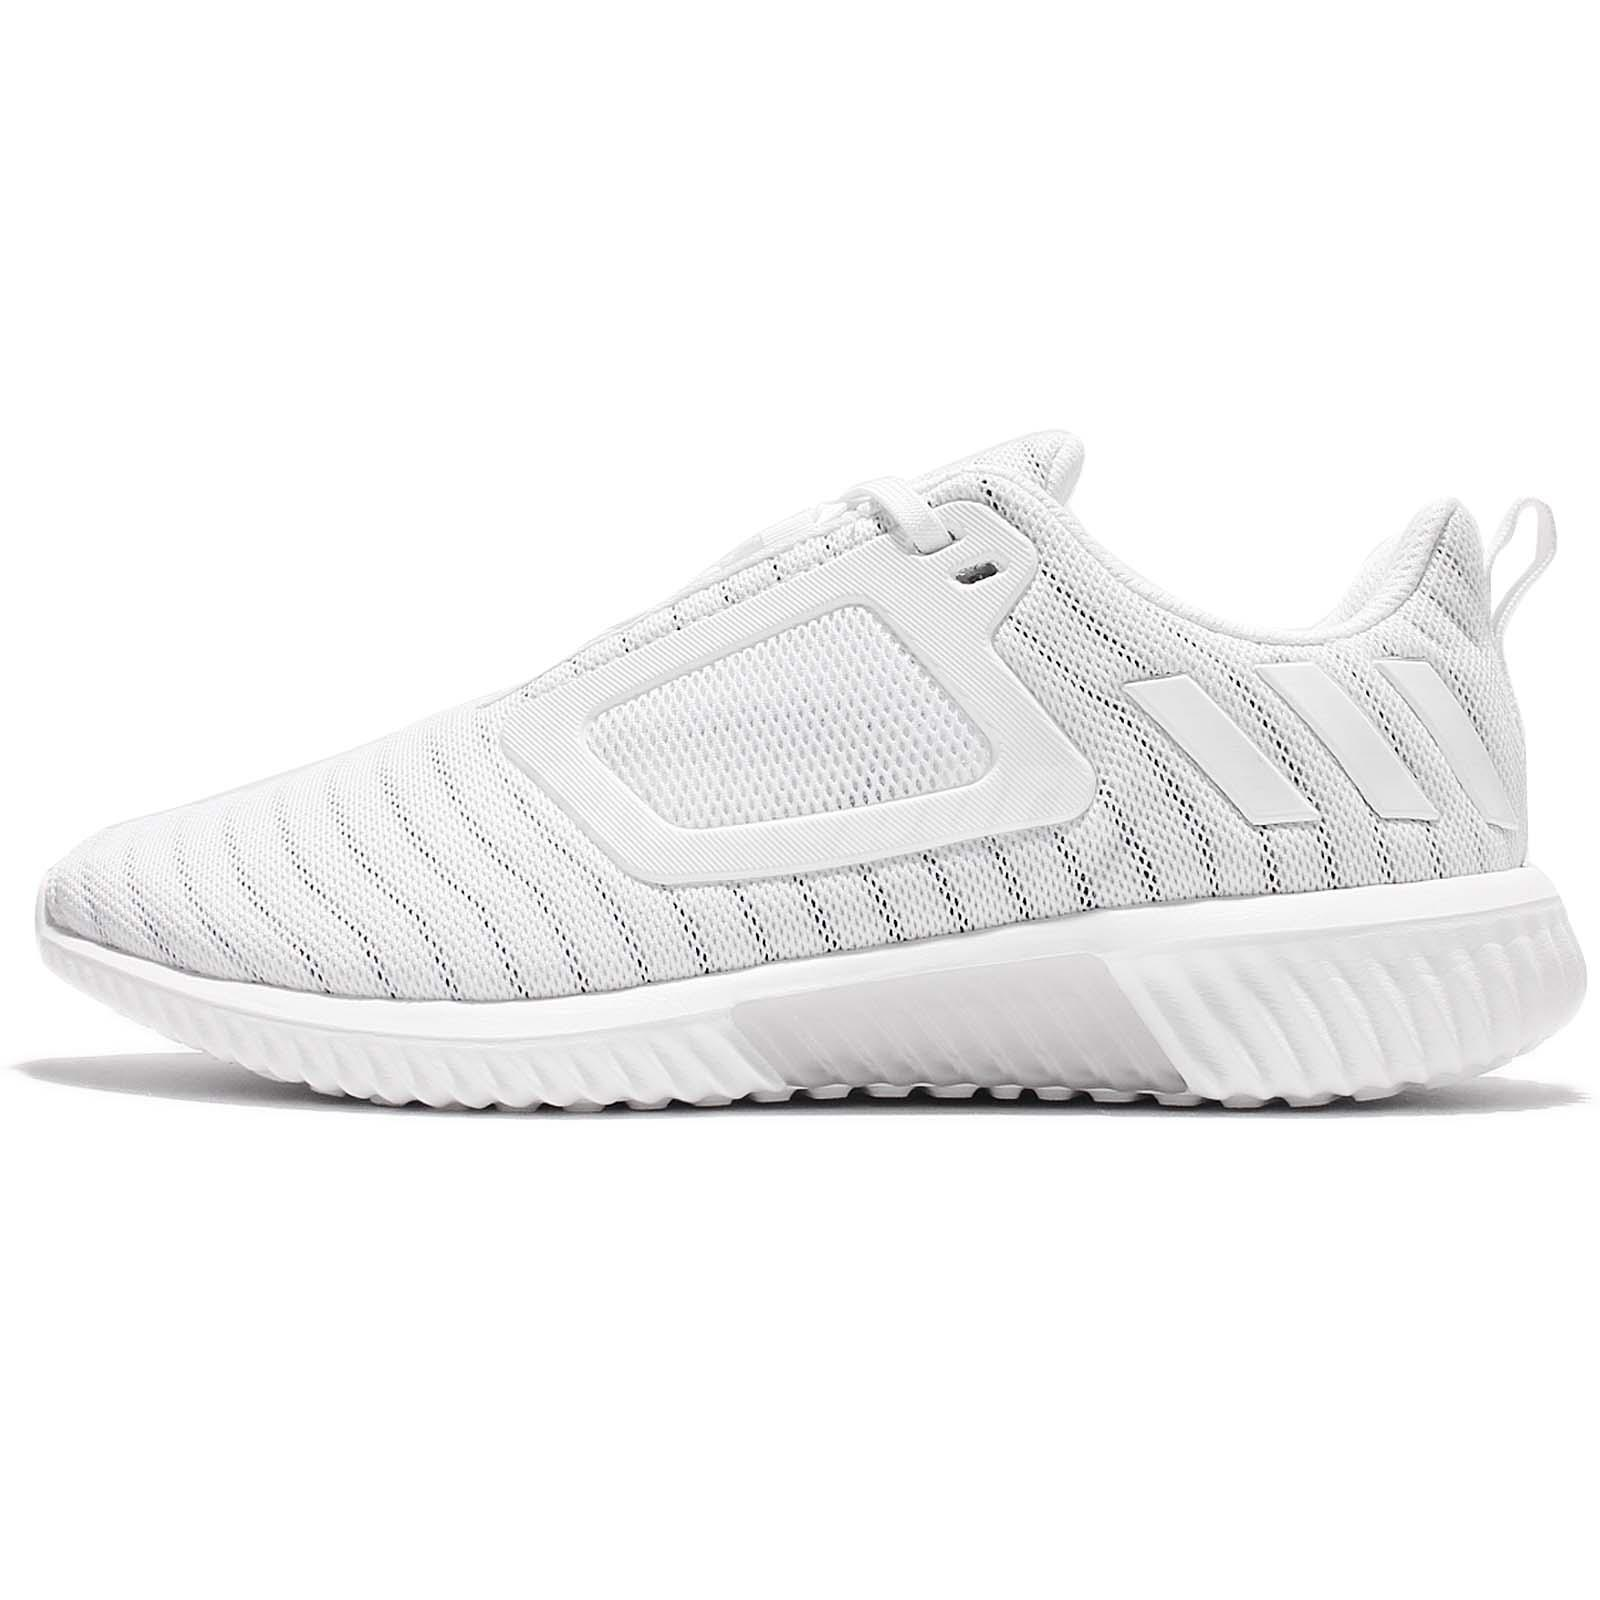 adidas Climacool W Bounce Triple White Women Running Shoes Sneakers BB1796 9e47e38bf5